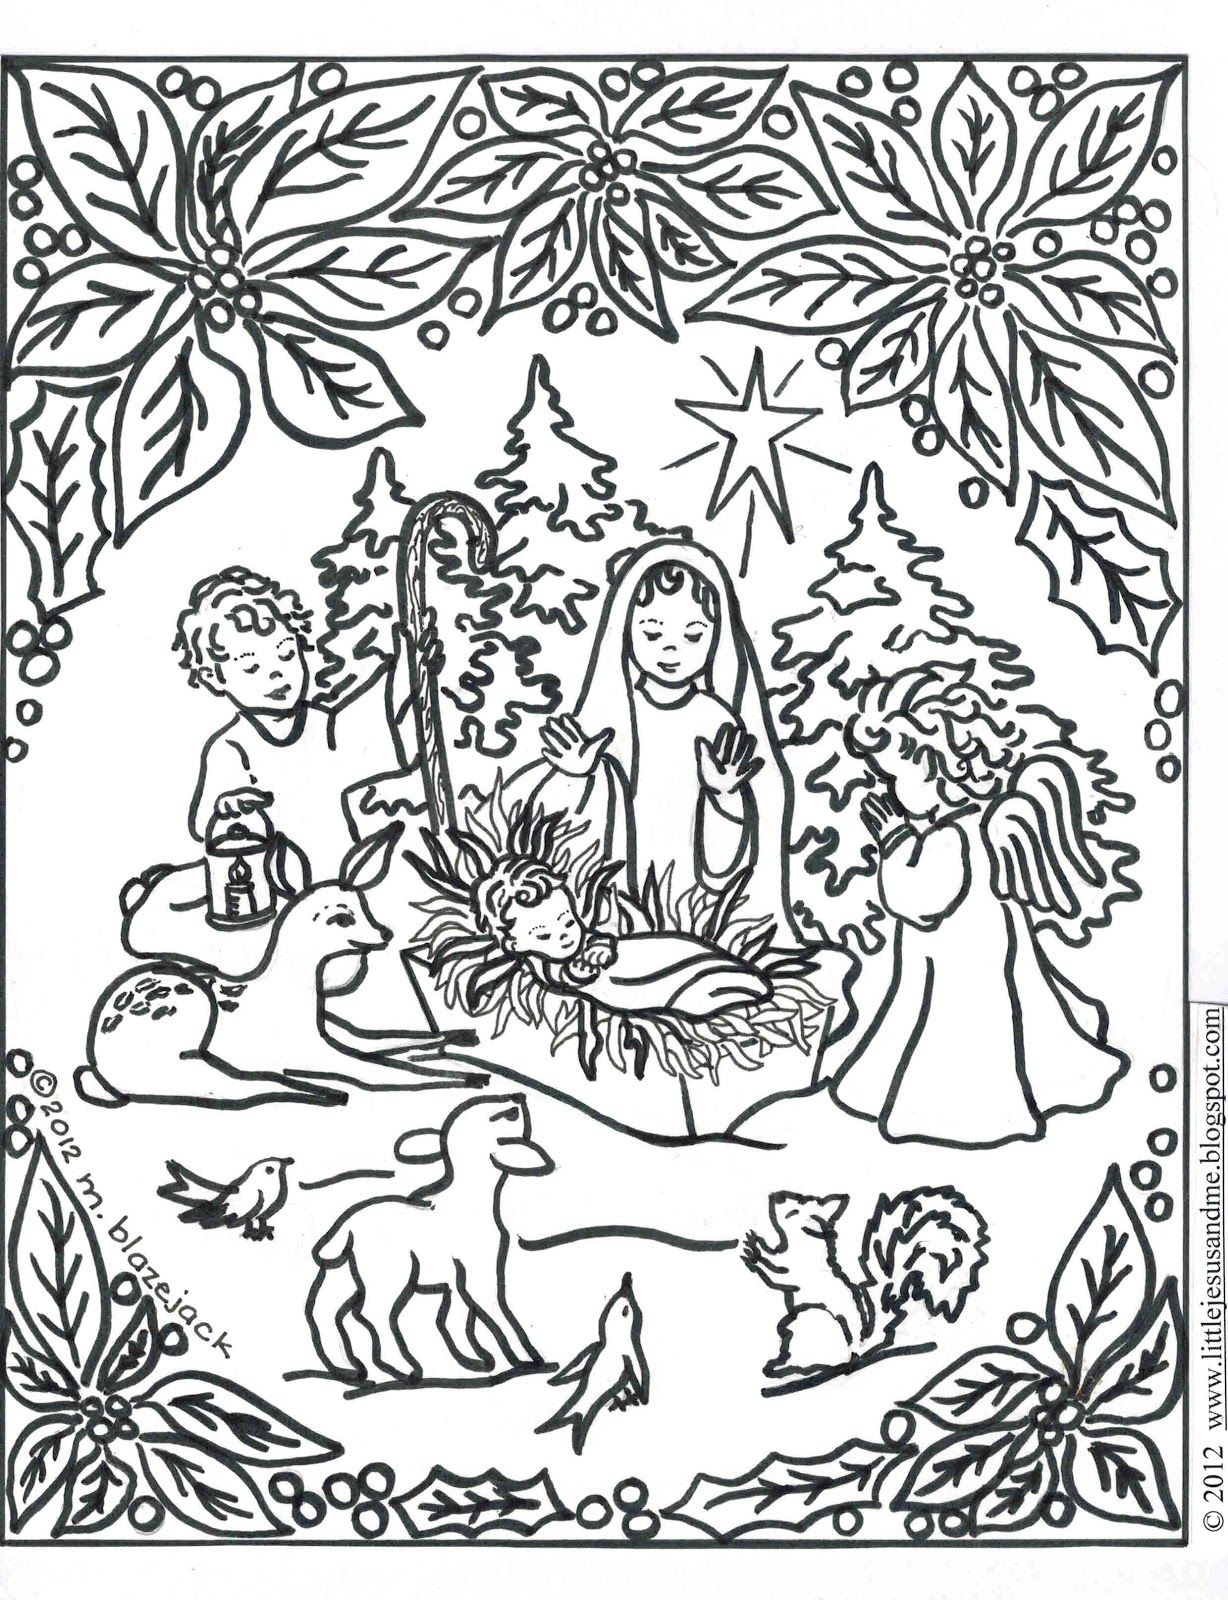 Jesus and Nativity Coloring Page